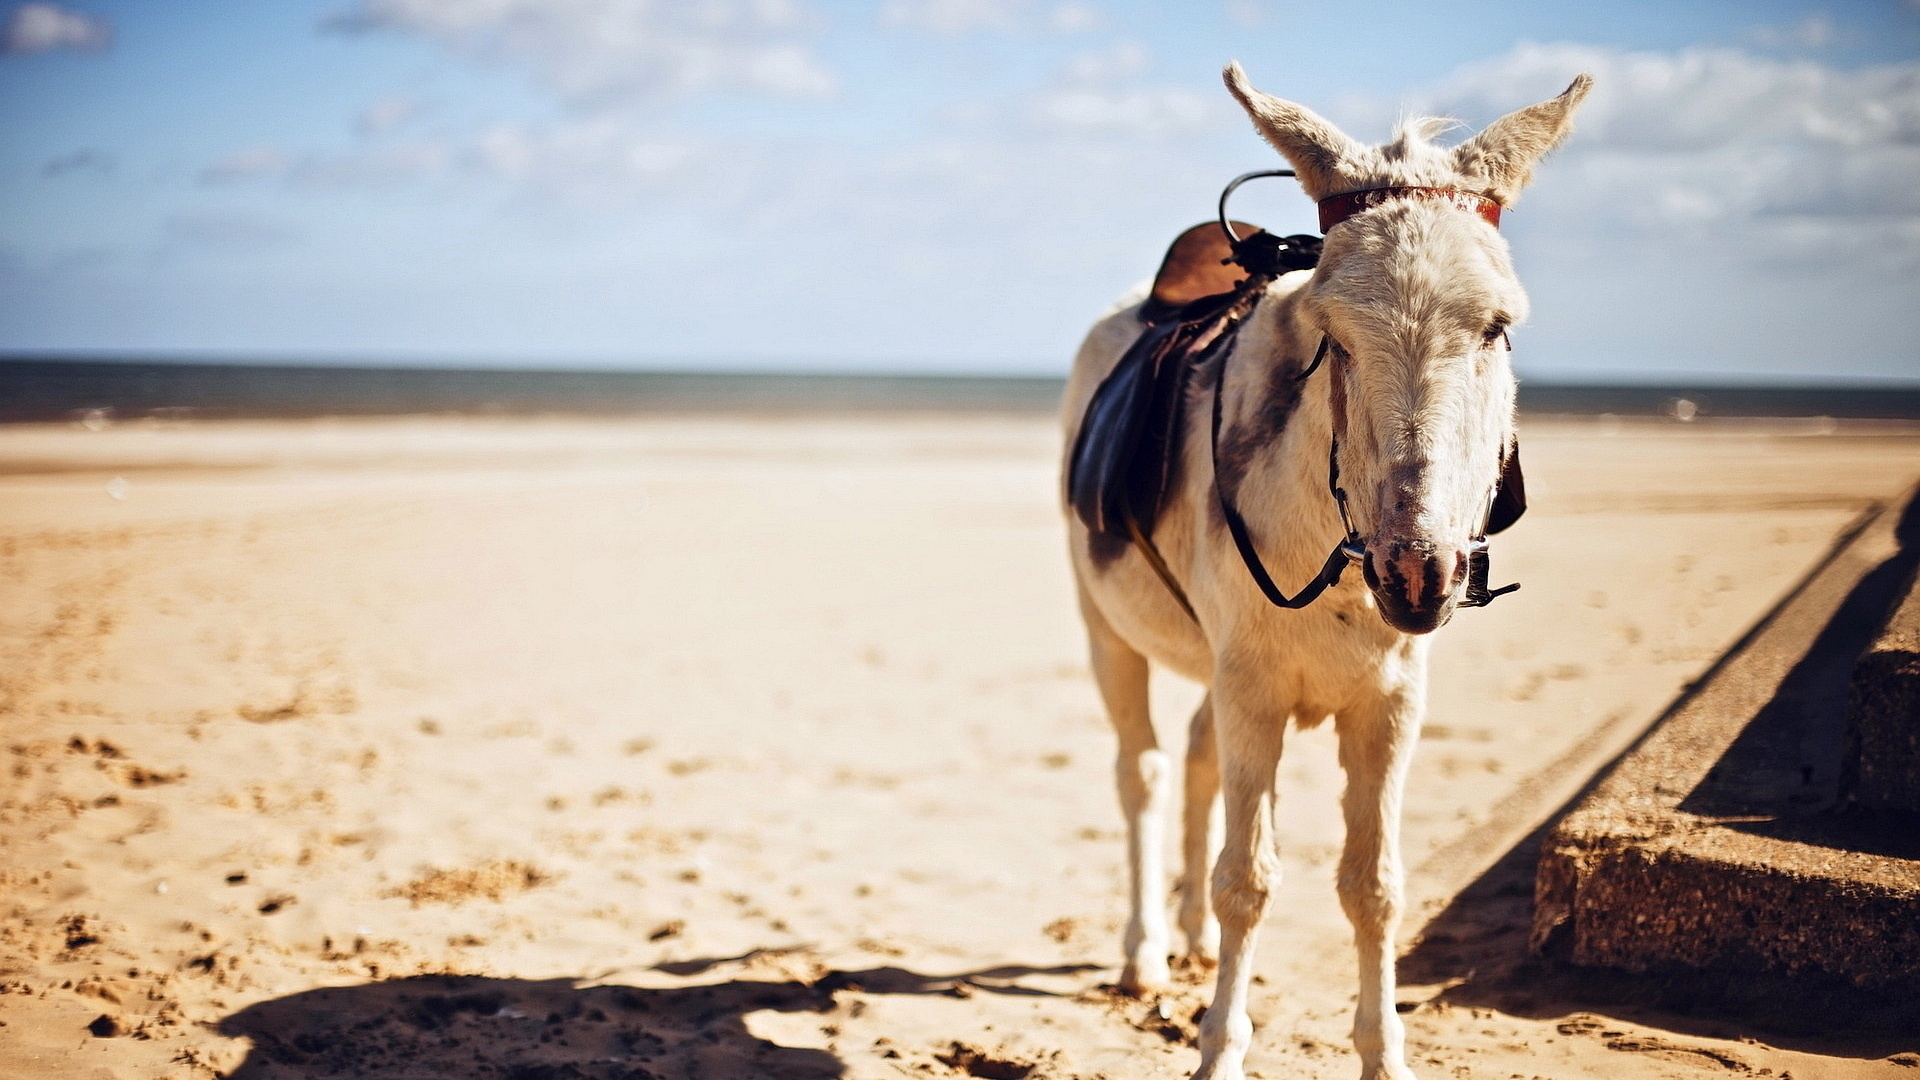 Saddled Donkey  in HD Wallpaper